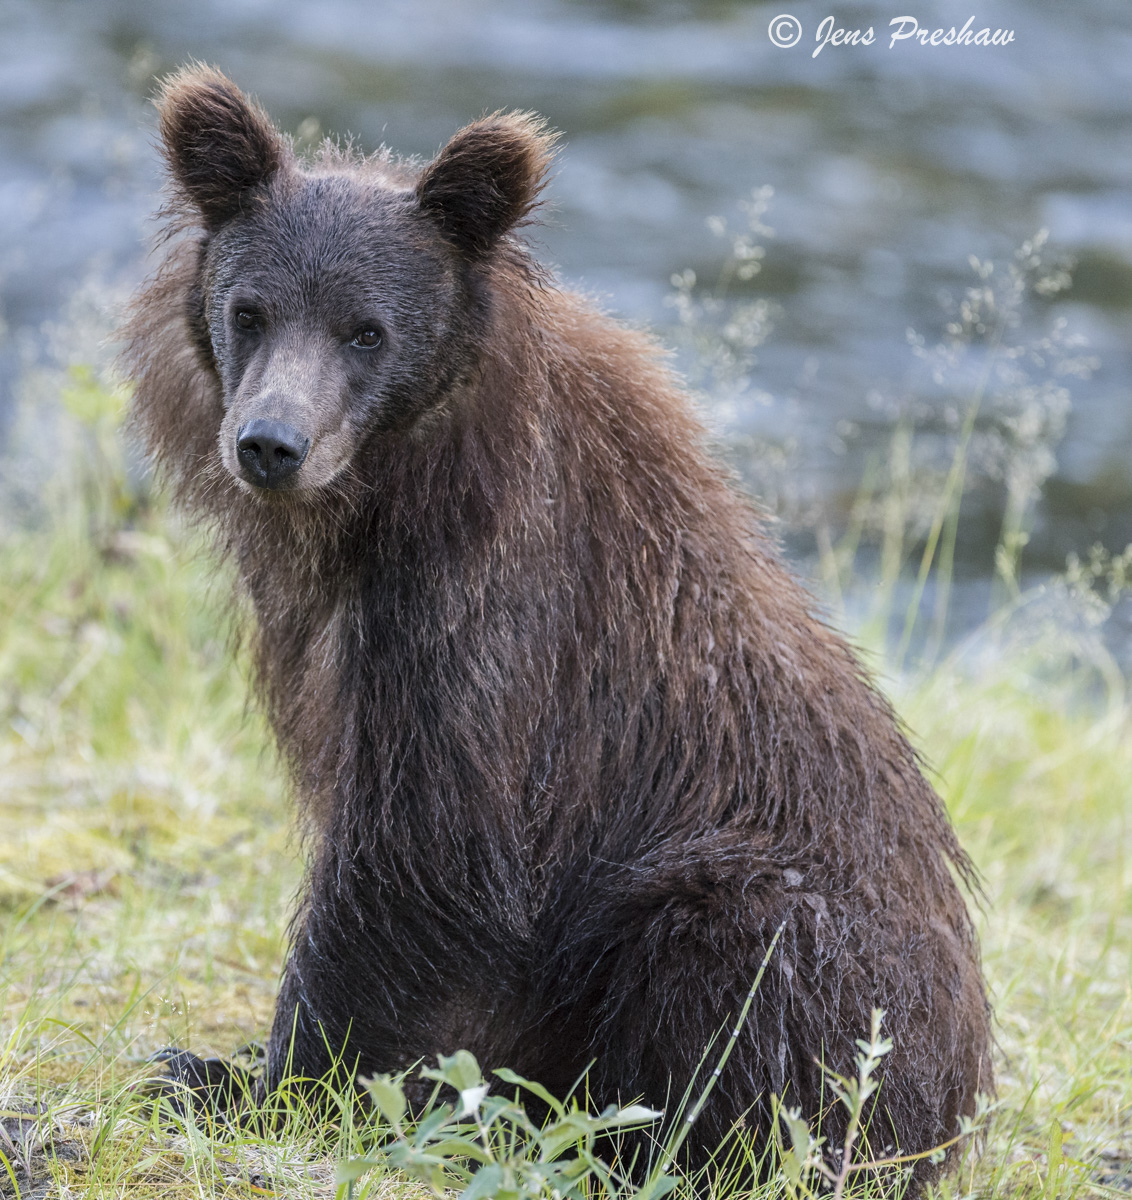 Grizzly Bear Cub, Dark Brown, Mane, Rounded Ears, Riverbank, River, British Columbia, Western Canada, Summer, photo